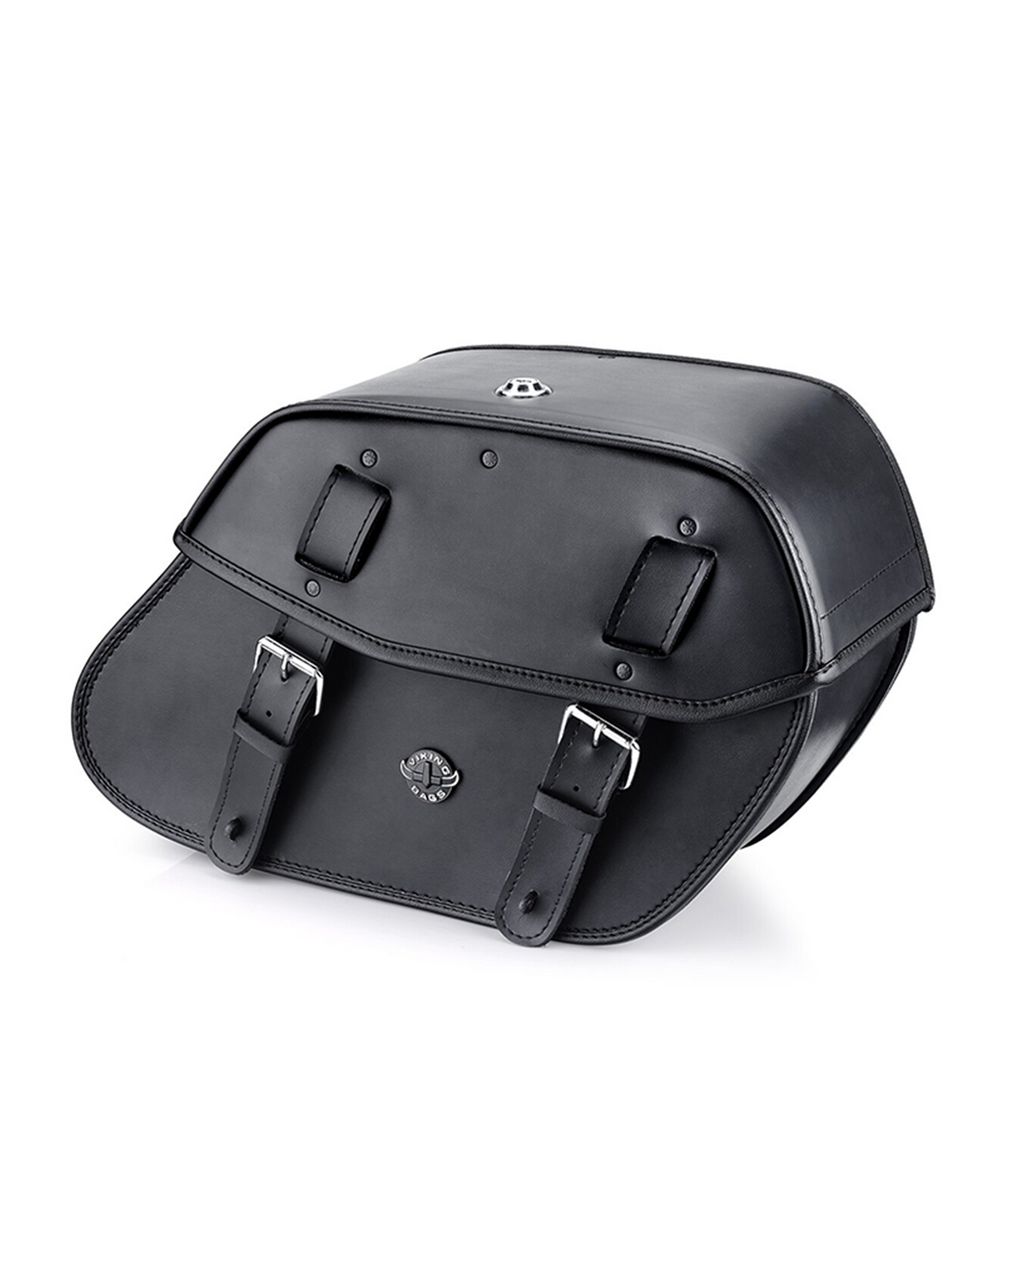 Viking Odin Large Motorcycle Saddlebags For Harley Softail Breakout Main View